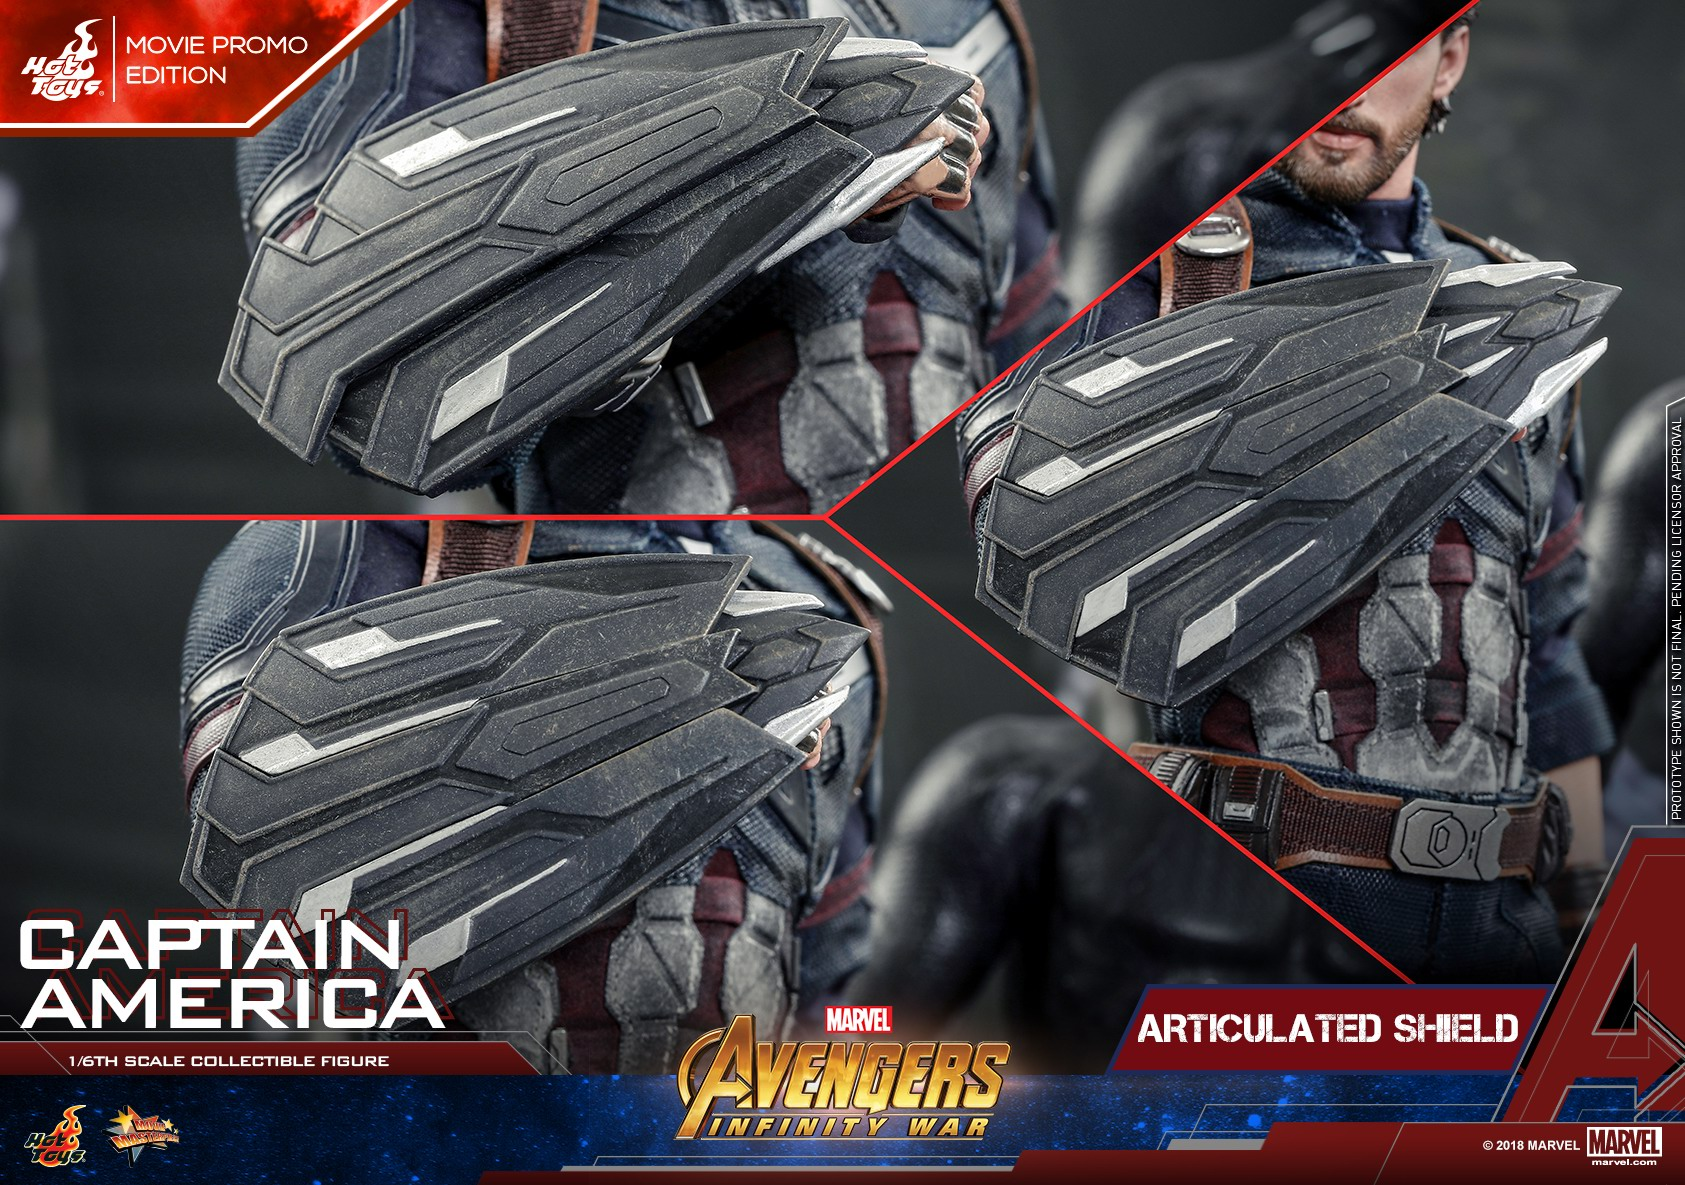 Hot Toys - AIW - Captain America collectible figure (Movie Promo)_PR15.jpg